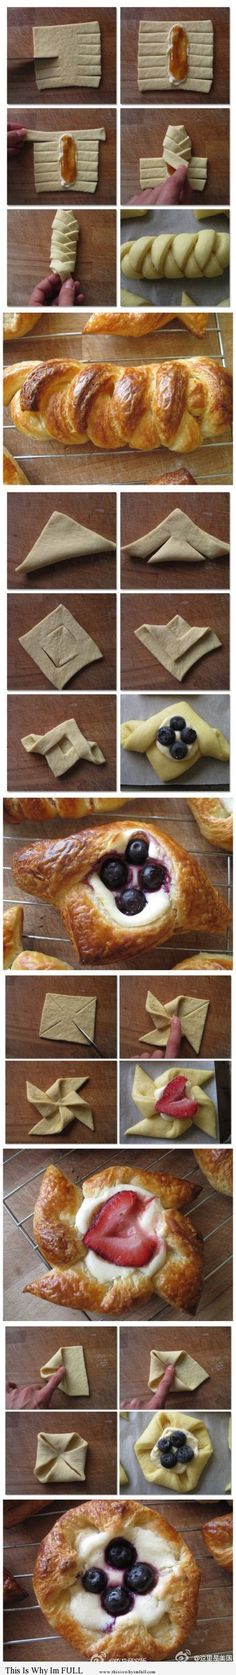 Fancy Danish (Step by Step) for brunch ideas!